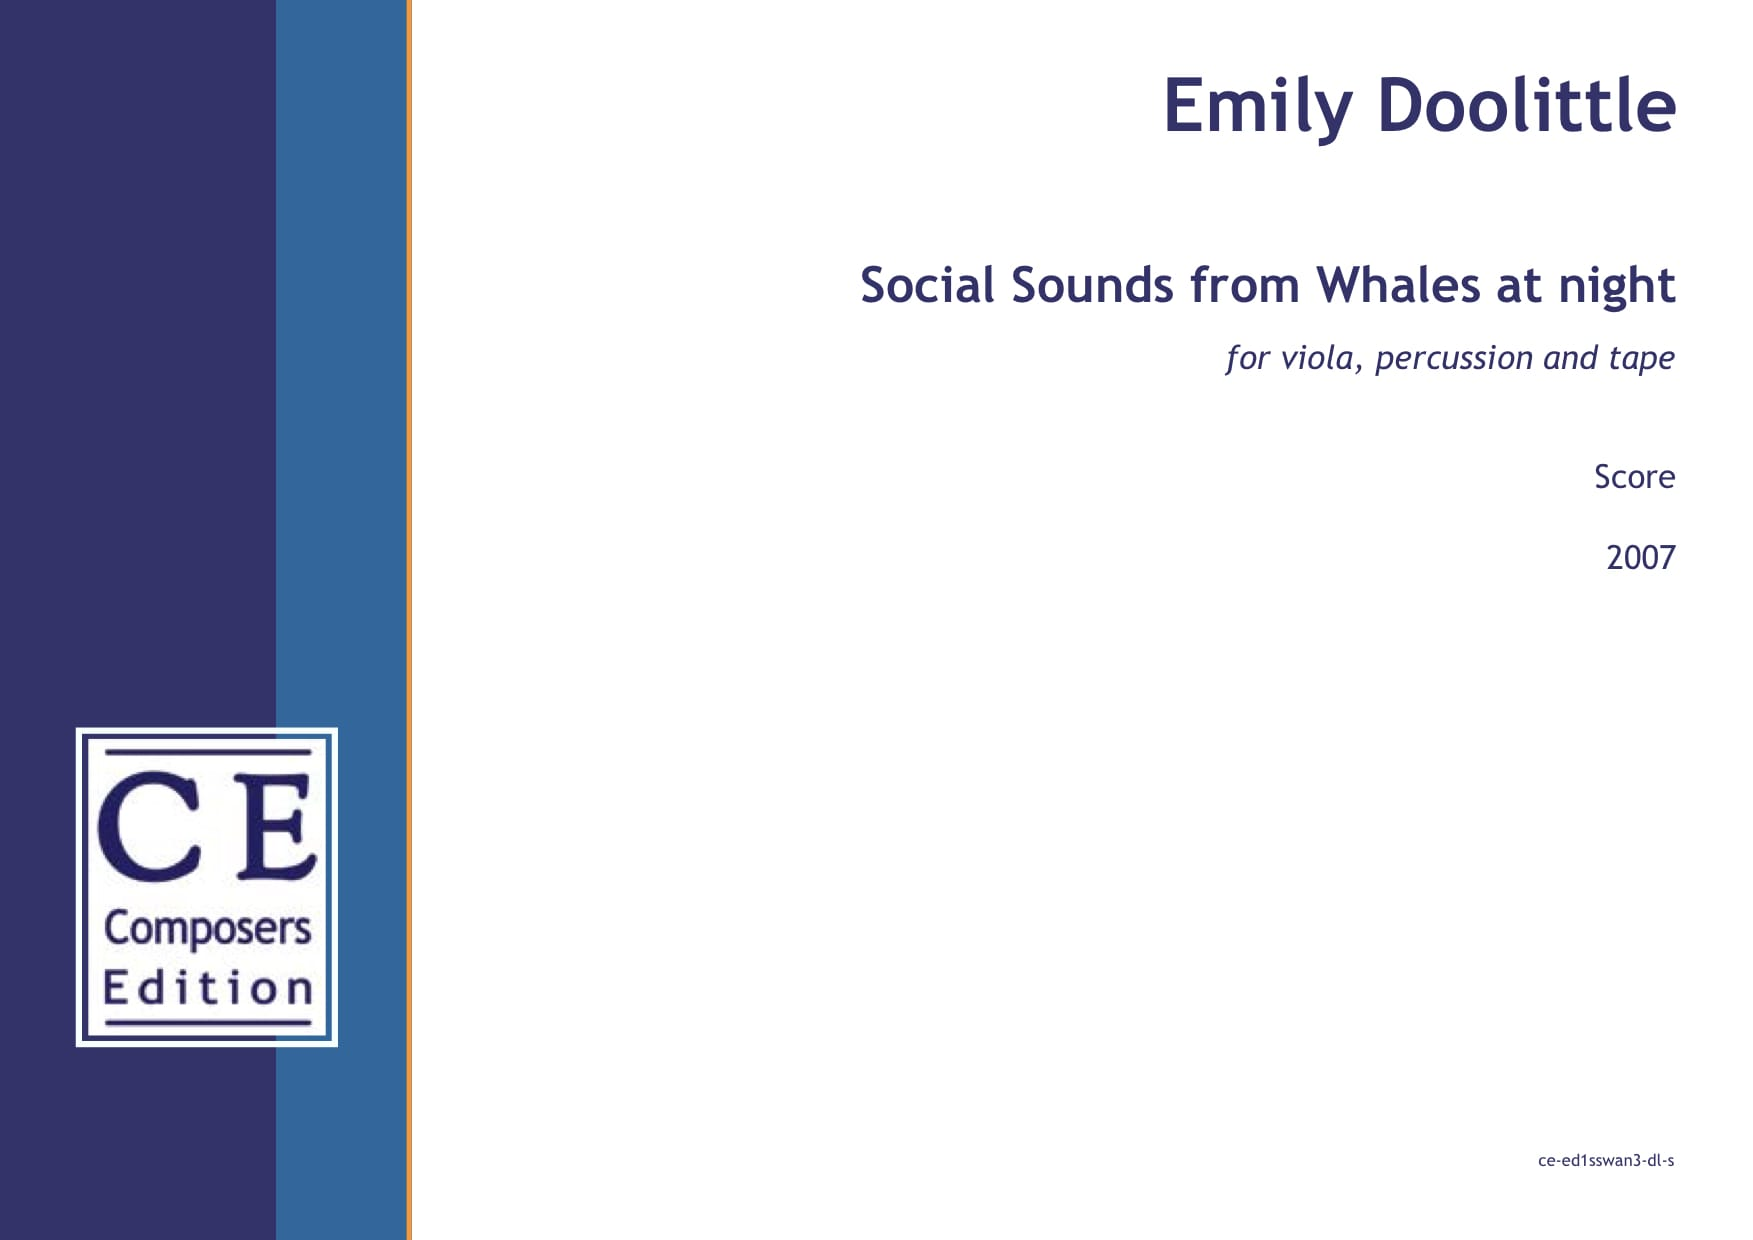 Emily Doolittle: Social Sounds from Whales at night (viola version) for viola, percussion and tape